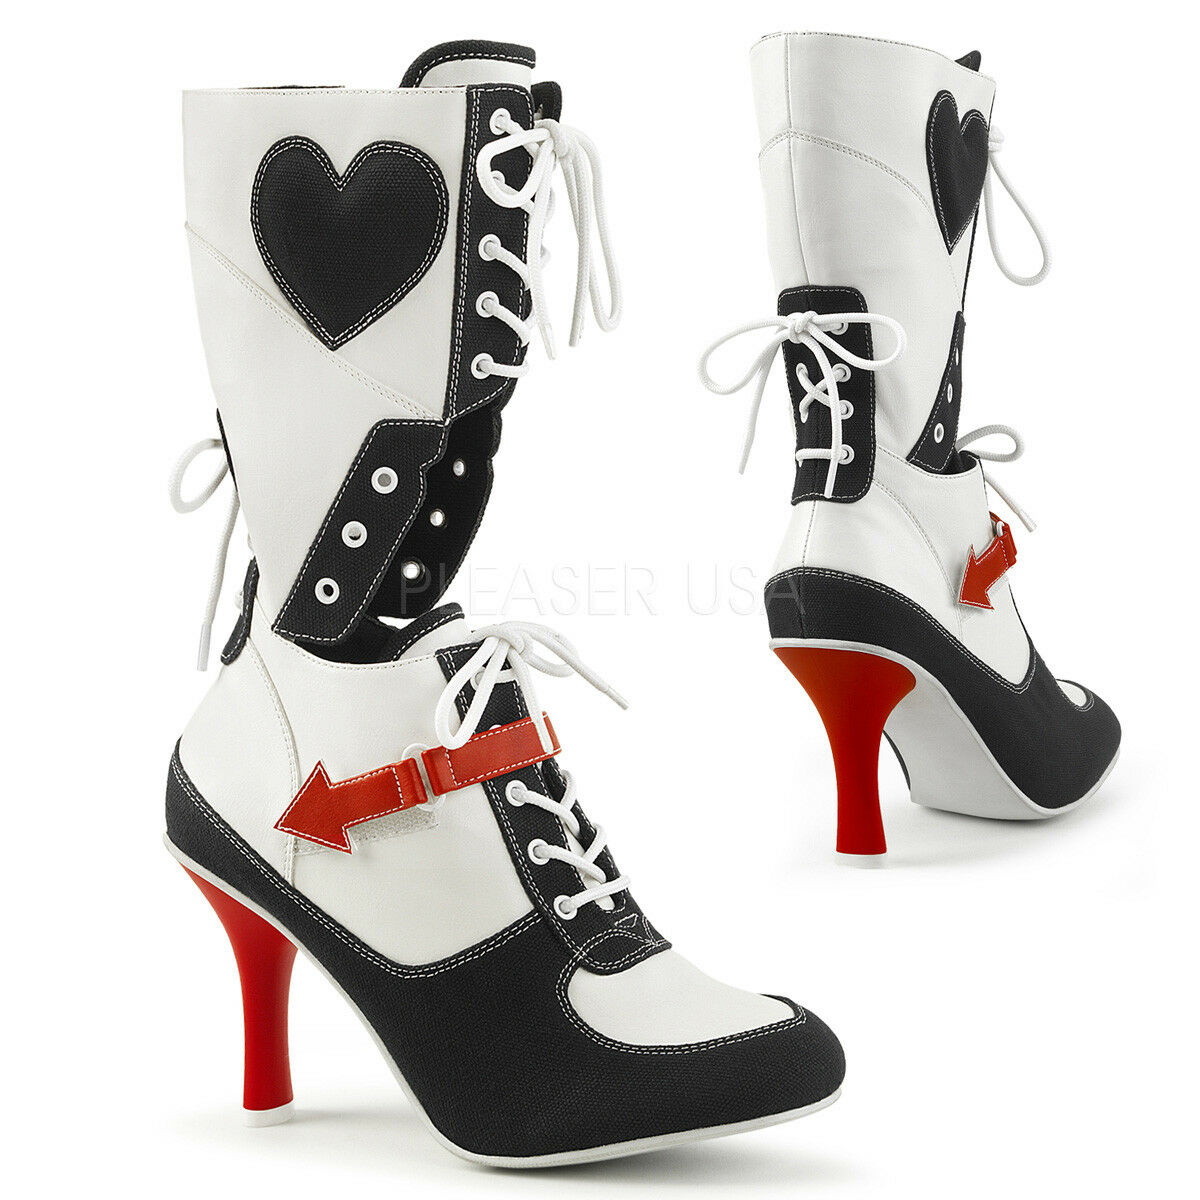 Black Red Queen of Hearts Halloween Costume Boots Shoes woman's size 7 8 9 10 11